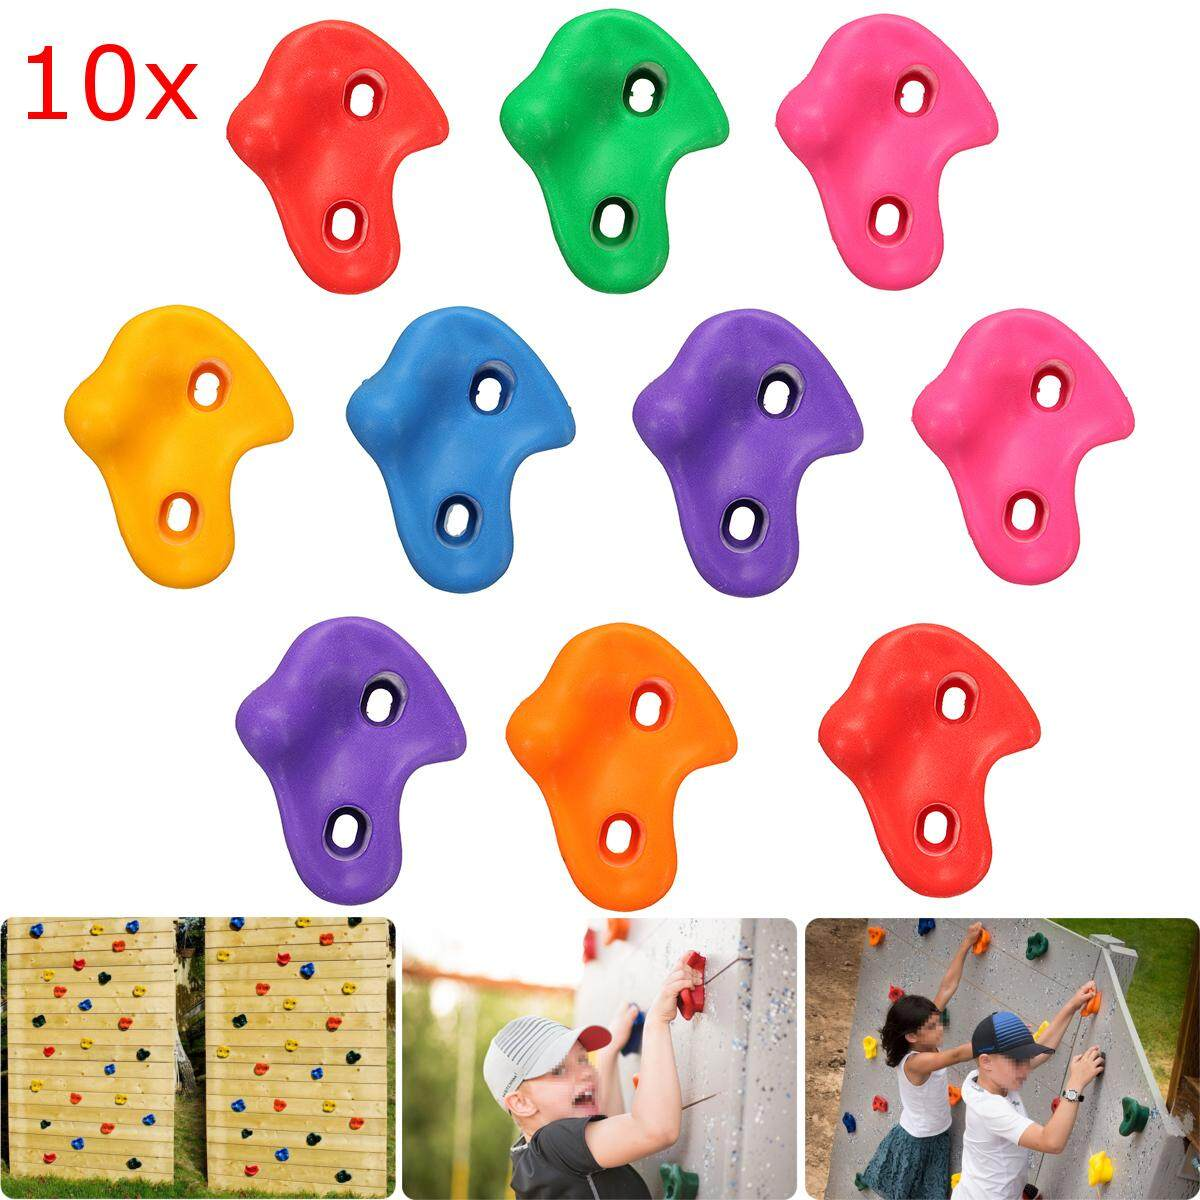 10pcs Plastic Children Kids Rock Climbing Wood Wall Stones Hand Feet Holds Grip Kits With Screw Random Color Fixing Prices According To Quality Of Products Camping & Hiking Sports & Entertainment